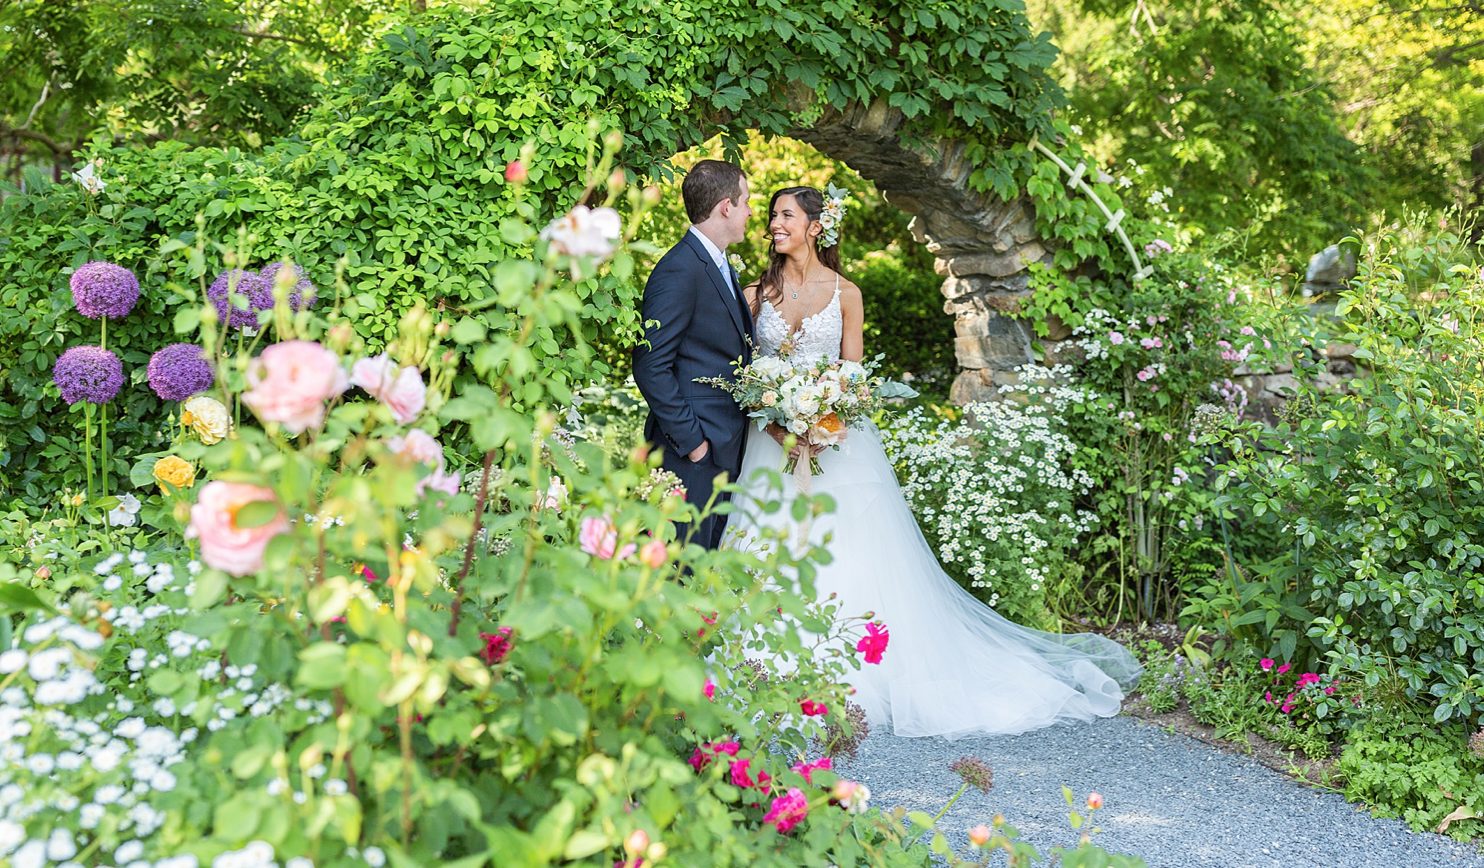 A wedding couple is standing in a beautiful garden with lots of blooming flowers.